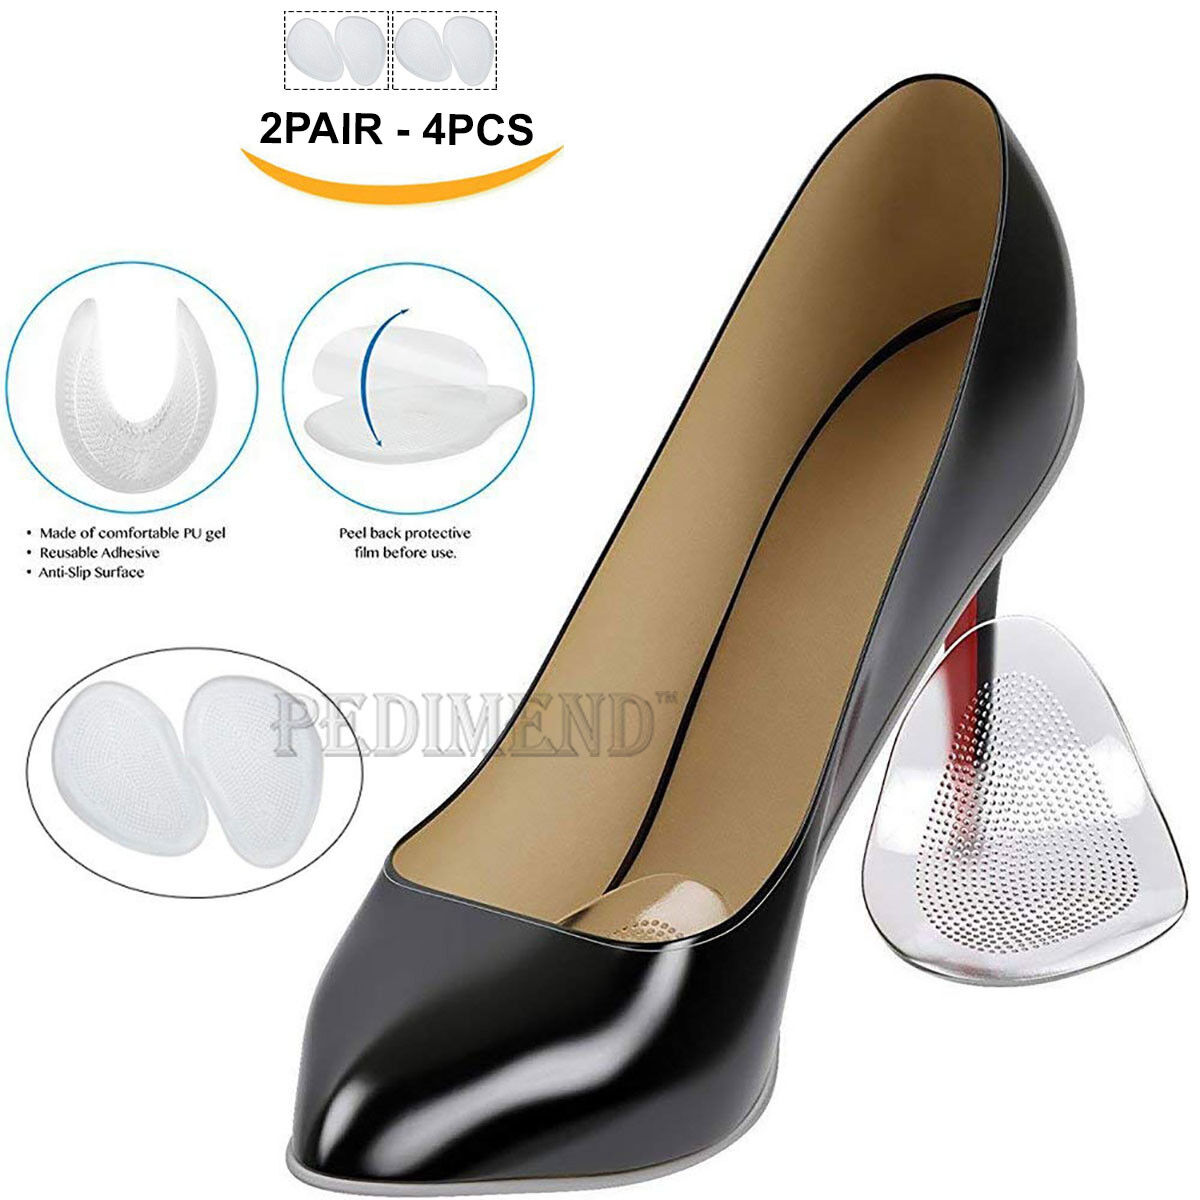 009eaf59212be6 Details about PEDIMEND™ Self-Adhesive Metatarsal Silicone Gel Pads Cushion  for High Heel 2PAIR